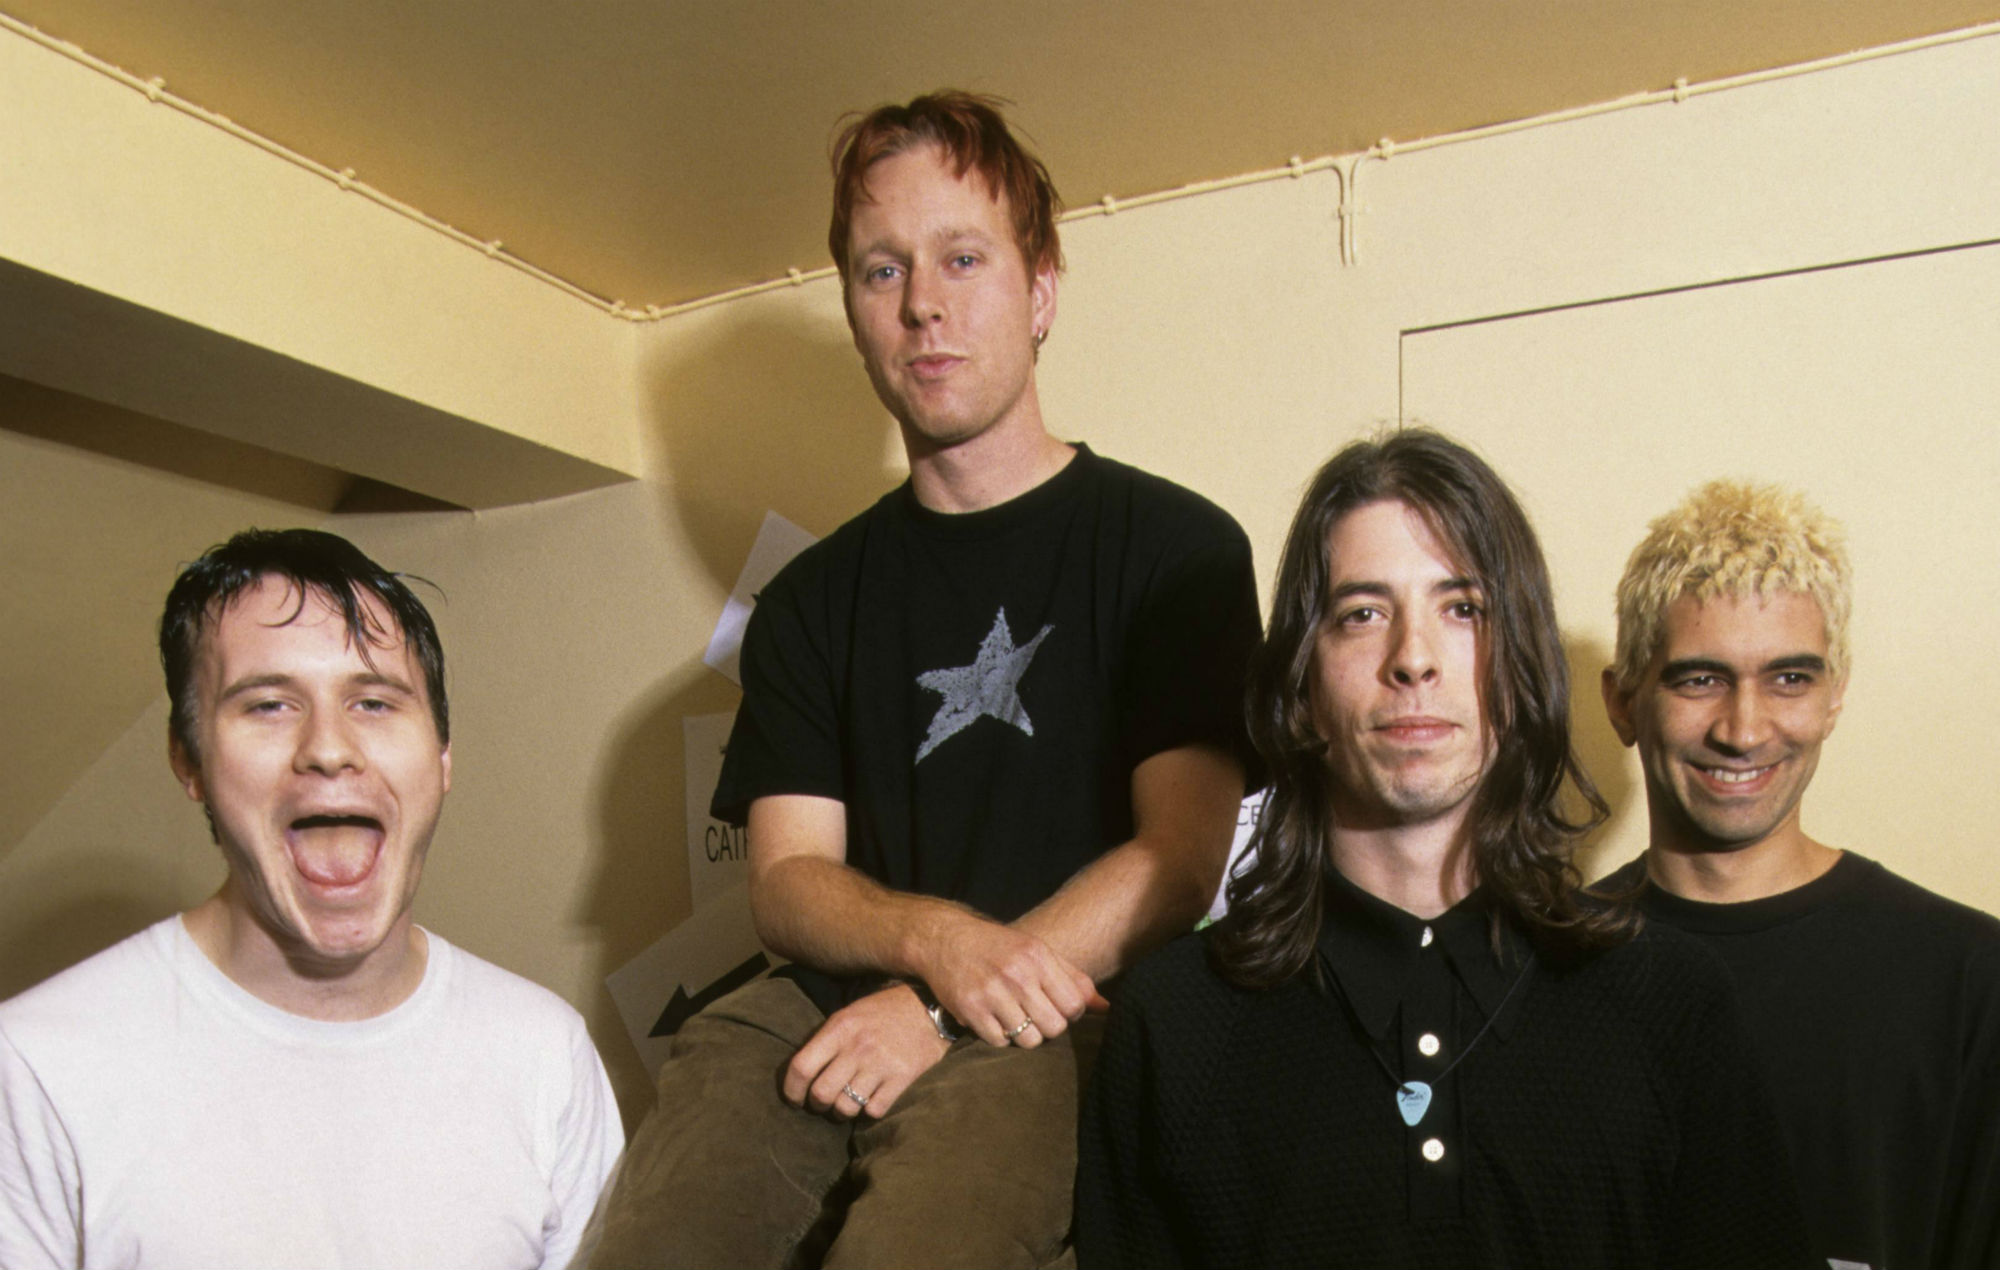 Foo Fighters mark 25th anniversary of their first gig with throwback photo